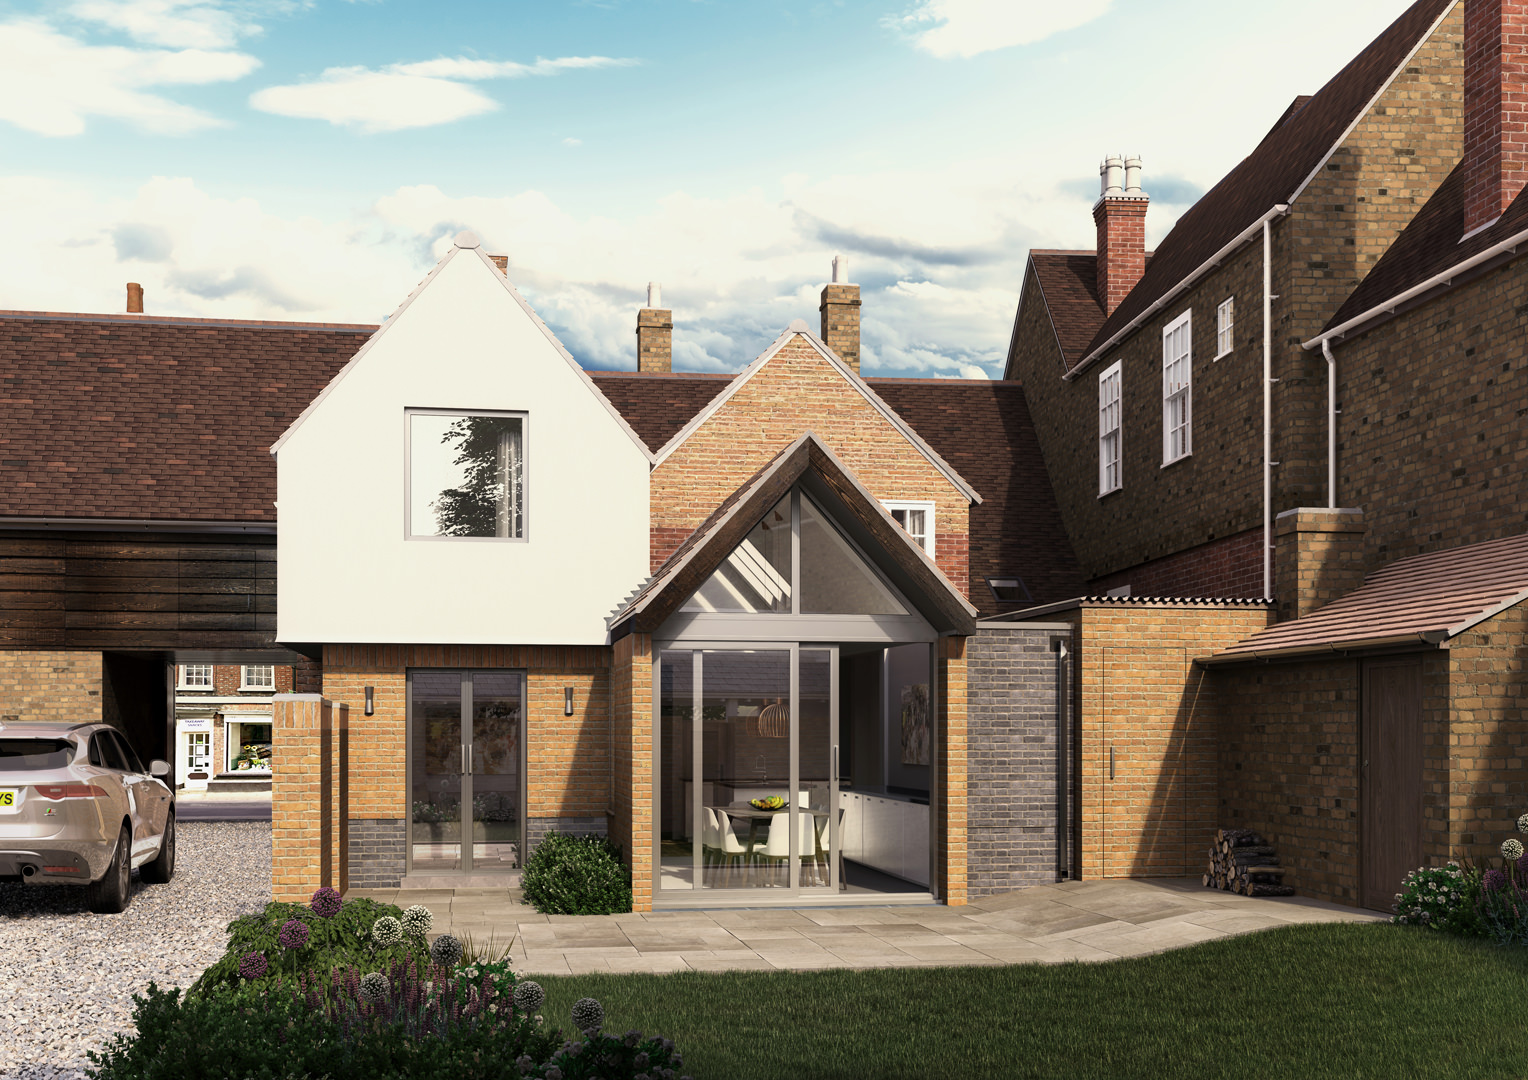 This ground and first floor extension to Grade 2 listed building has created a 5 bedroom family home with a successful balance of heritage and modern living in the centre of a Georgian market town in Bedfordshire